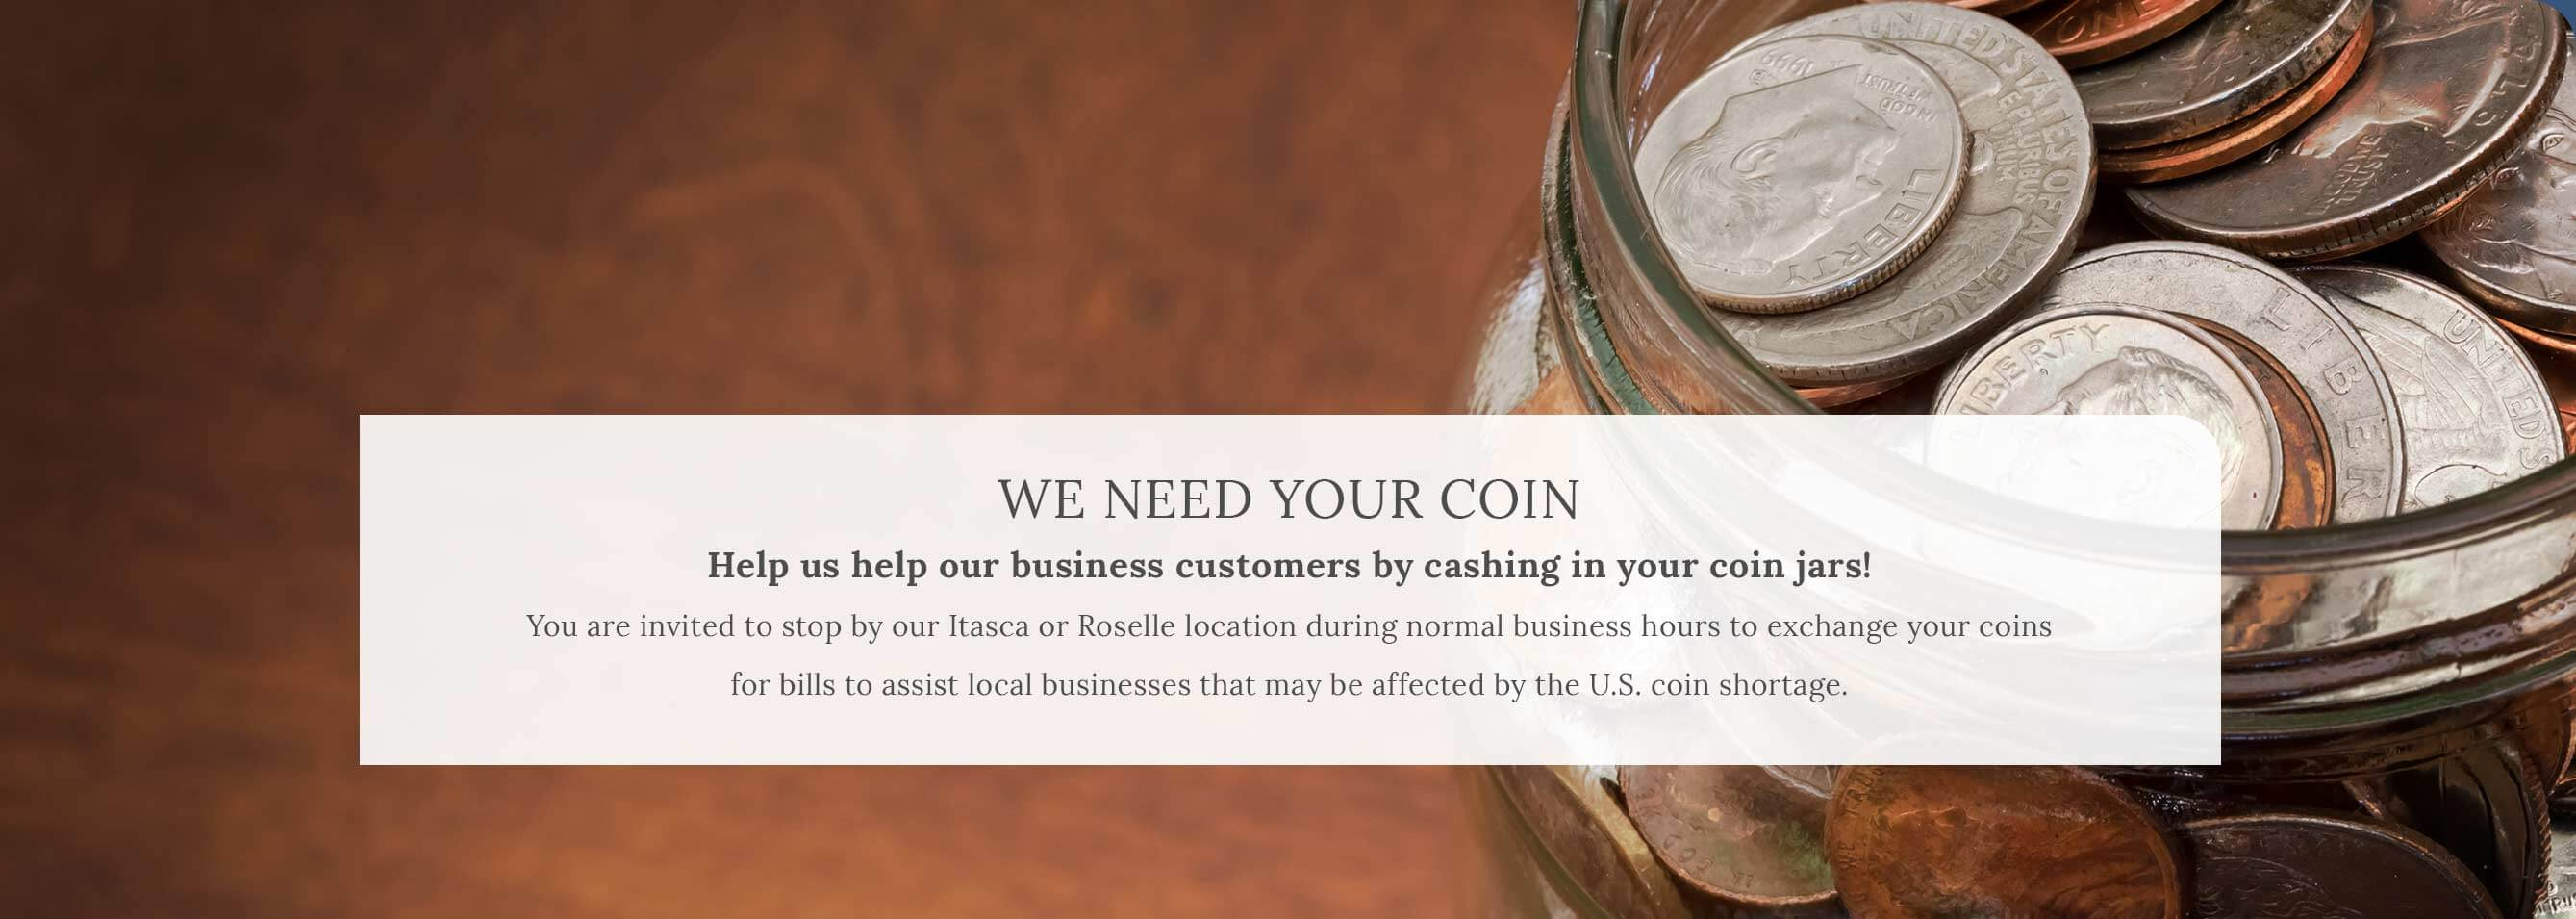 We Need Your Coin. Help us help our business customers by cashing in your coin jars! You are invited to stop by our Itasca or Roselle location during normal business hours to exchange your coins for bills to assist local businesses that may be affected by the U.S. coin shortage.